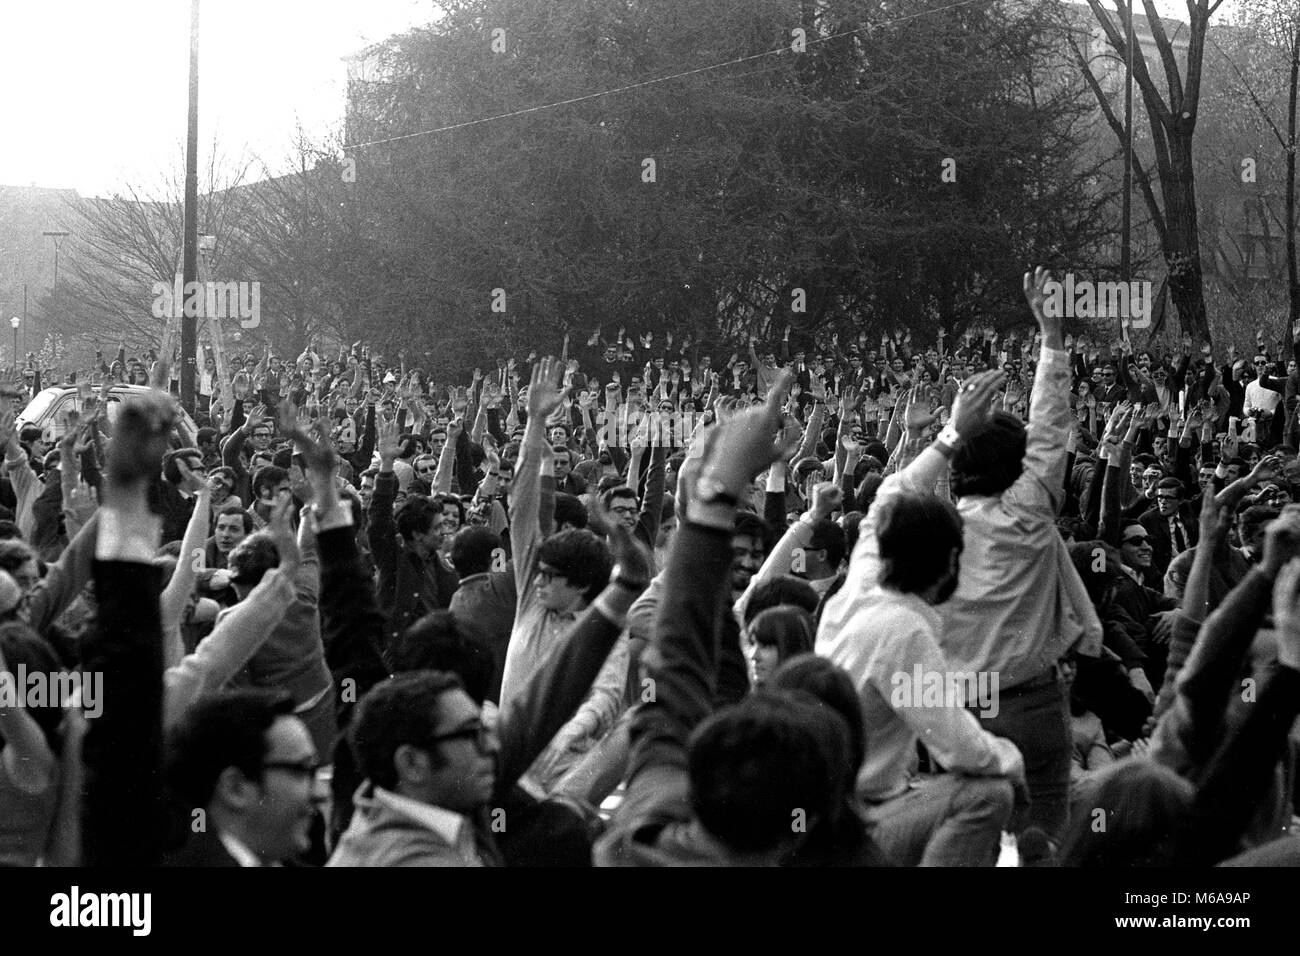 ASSEMBLY OF UNIVERSITY STUDENTS OF THE POLYTECHNIC IN PIAZZA LEONARDO DA VINCI, VOTE FOR HAND YEAR 1968 (PHOTO DE - Stock Image